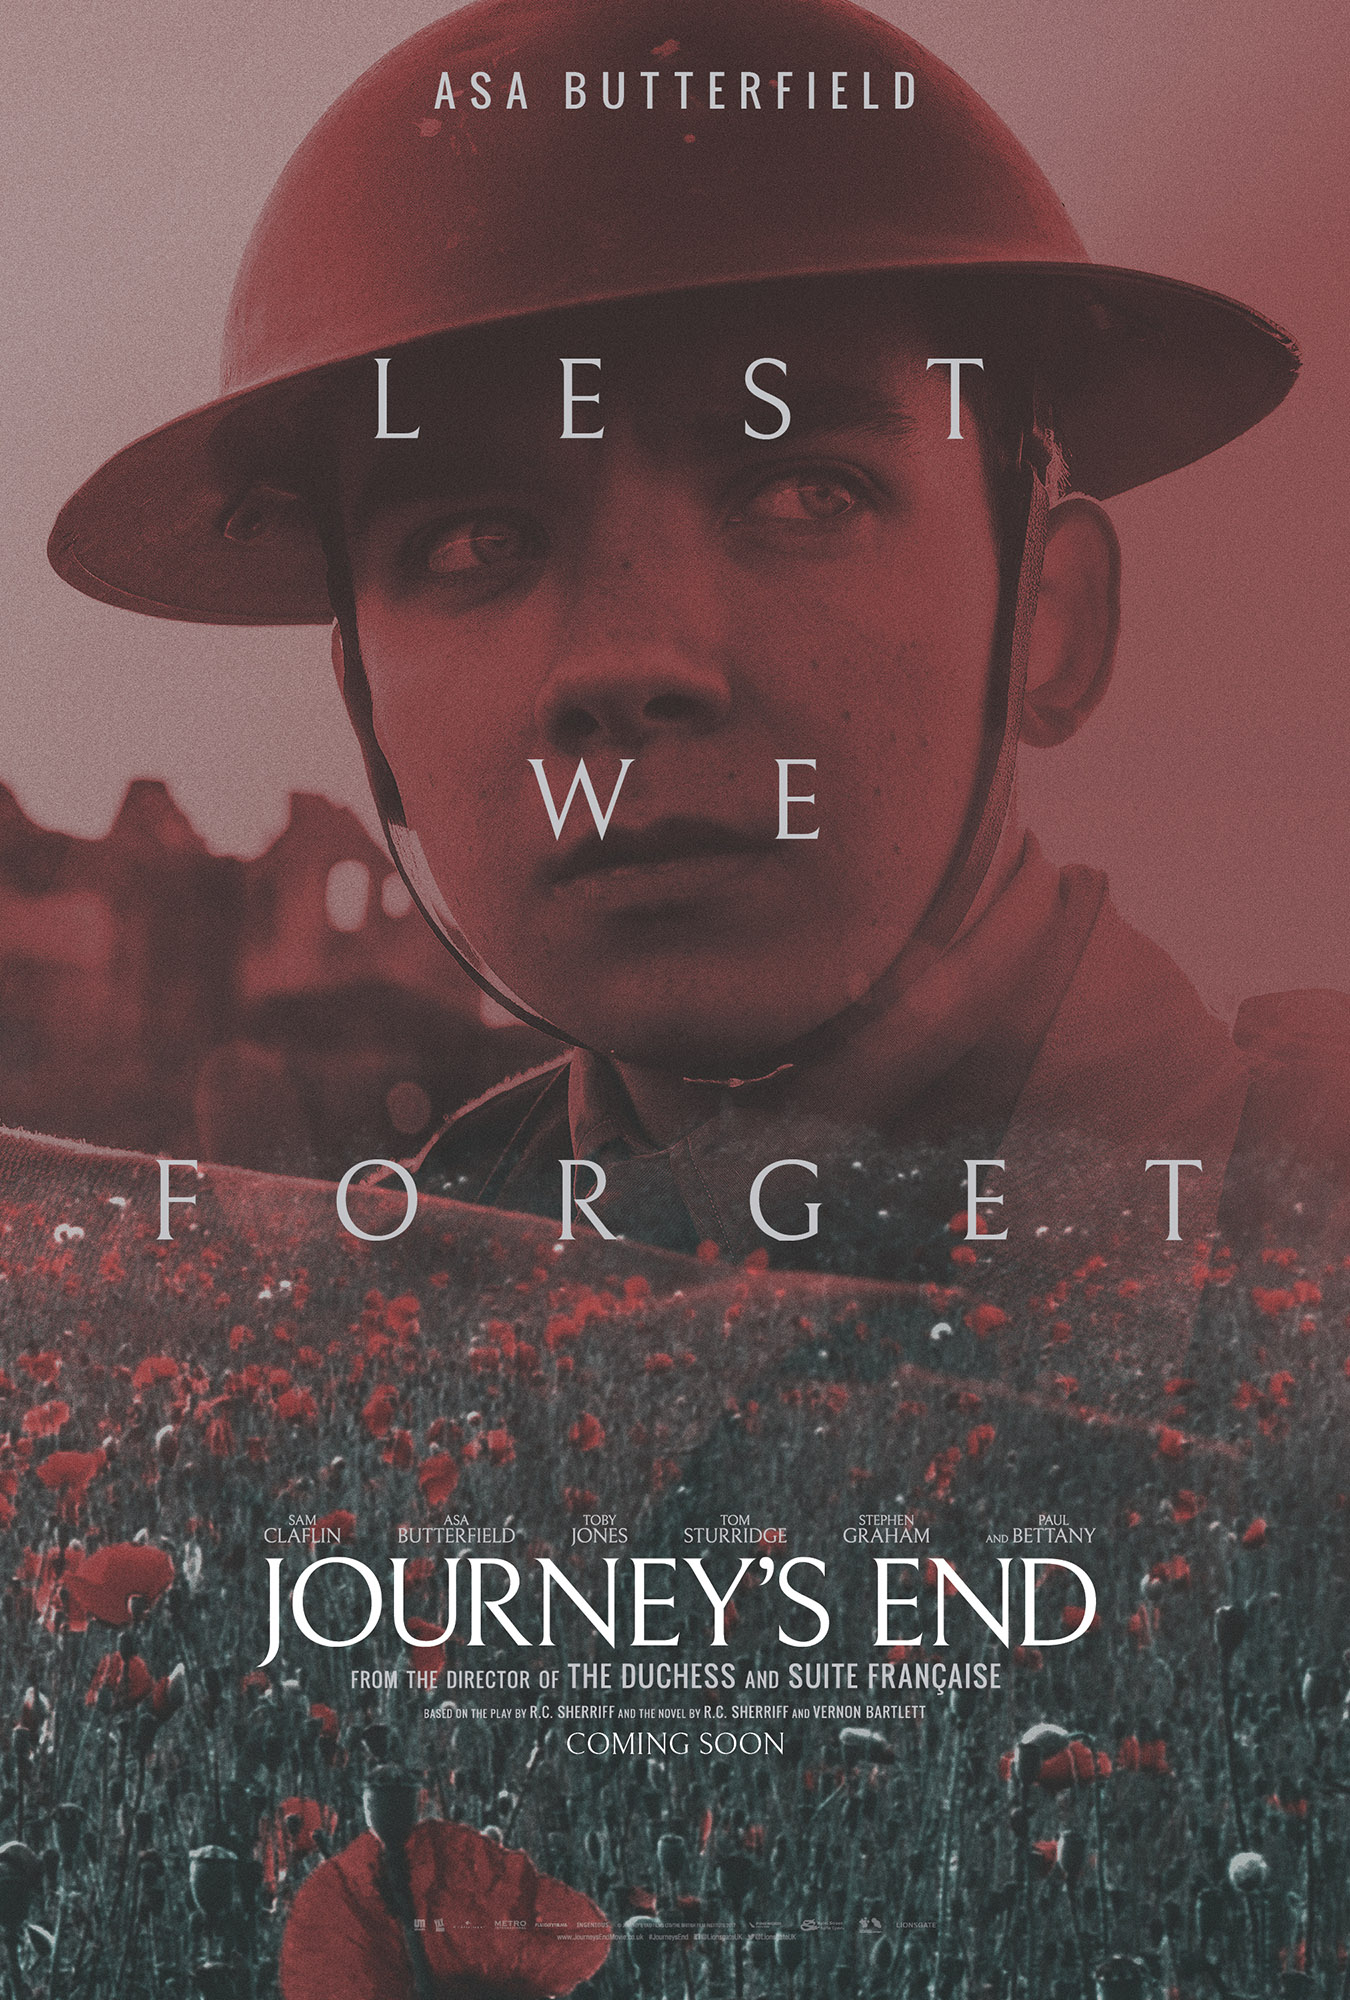 journeys end Journey's end has 2,149 ratings and 127 reviews warwick said: journey's end is considered a classic of first world war literature now, but at the time .